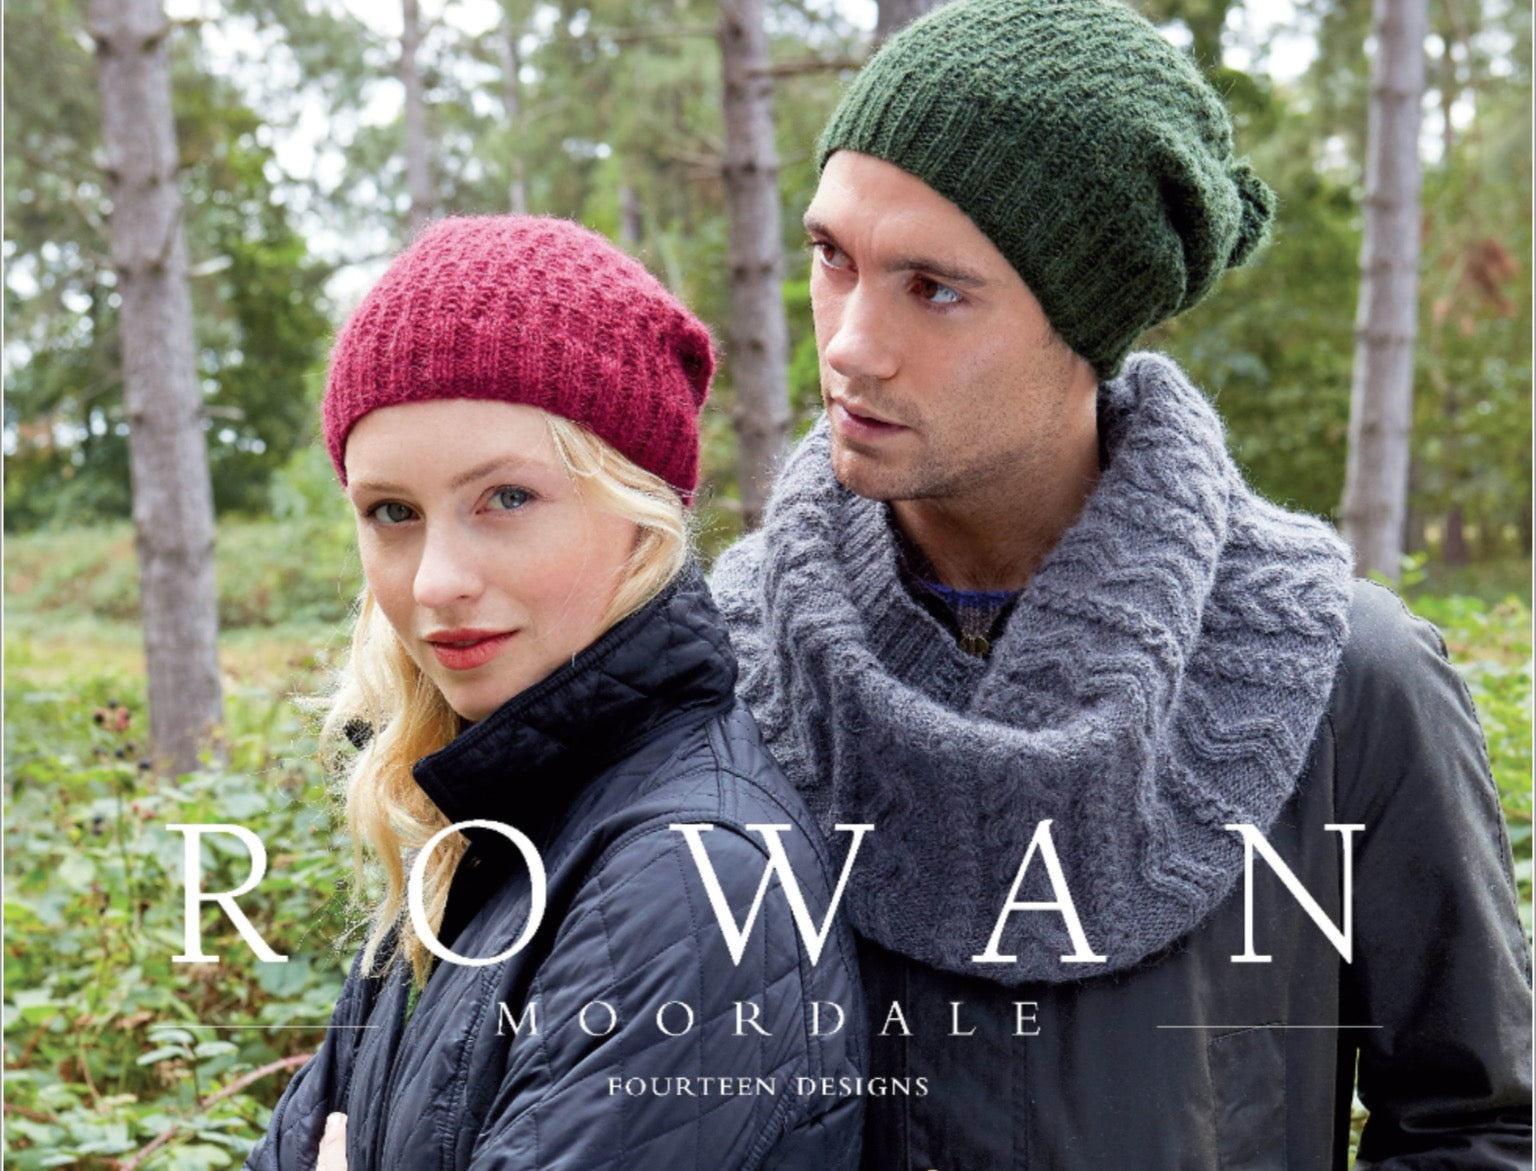 Rowan Moordale Collection by Martin Storey